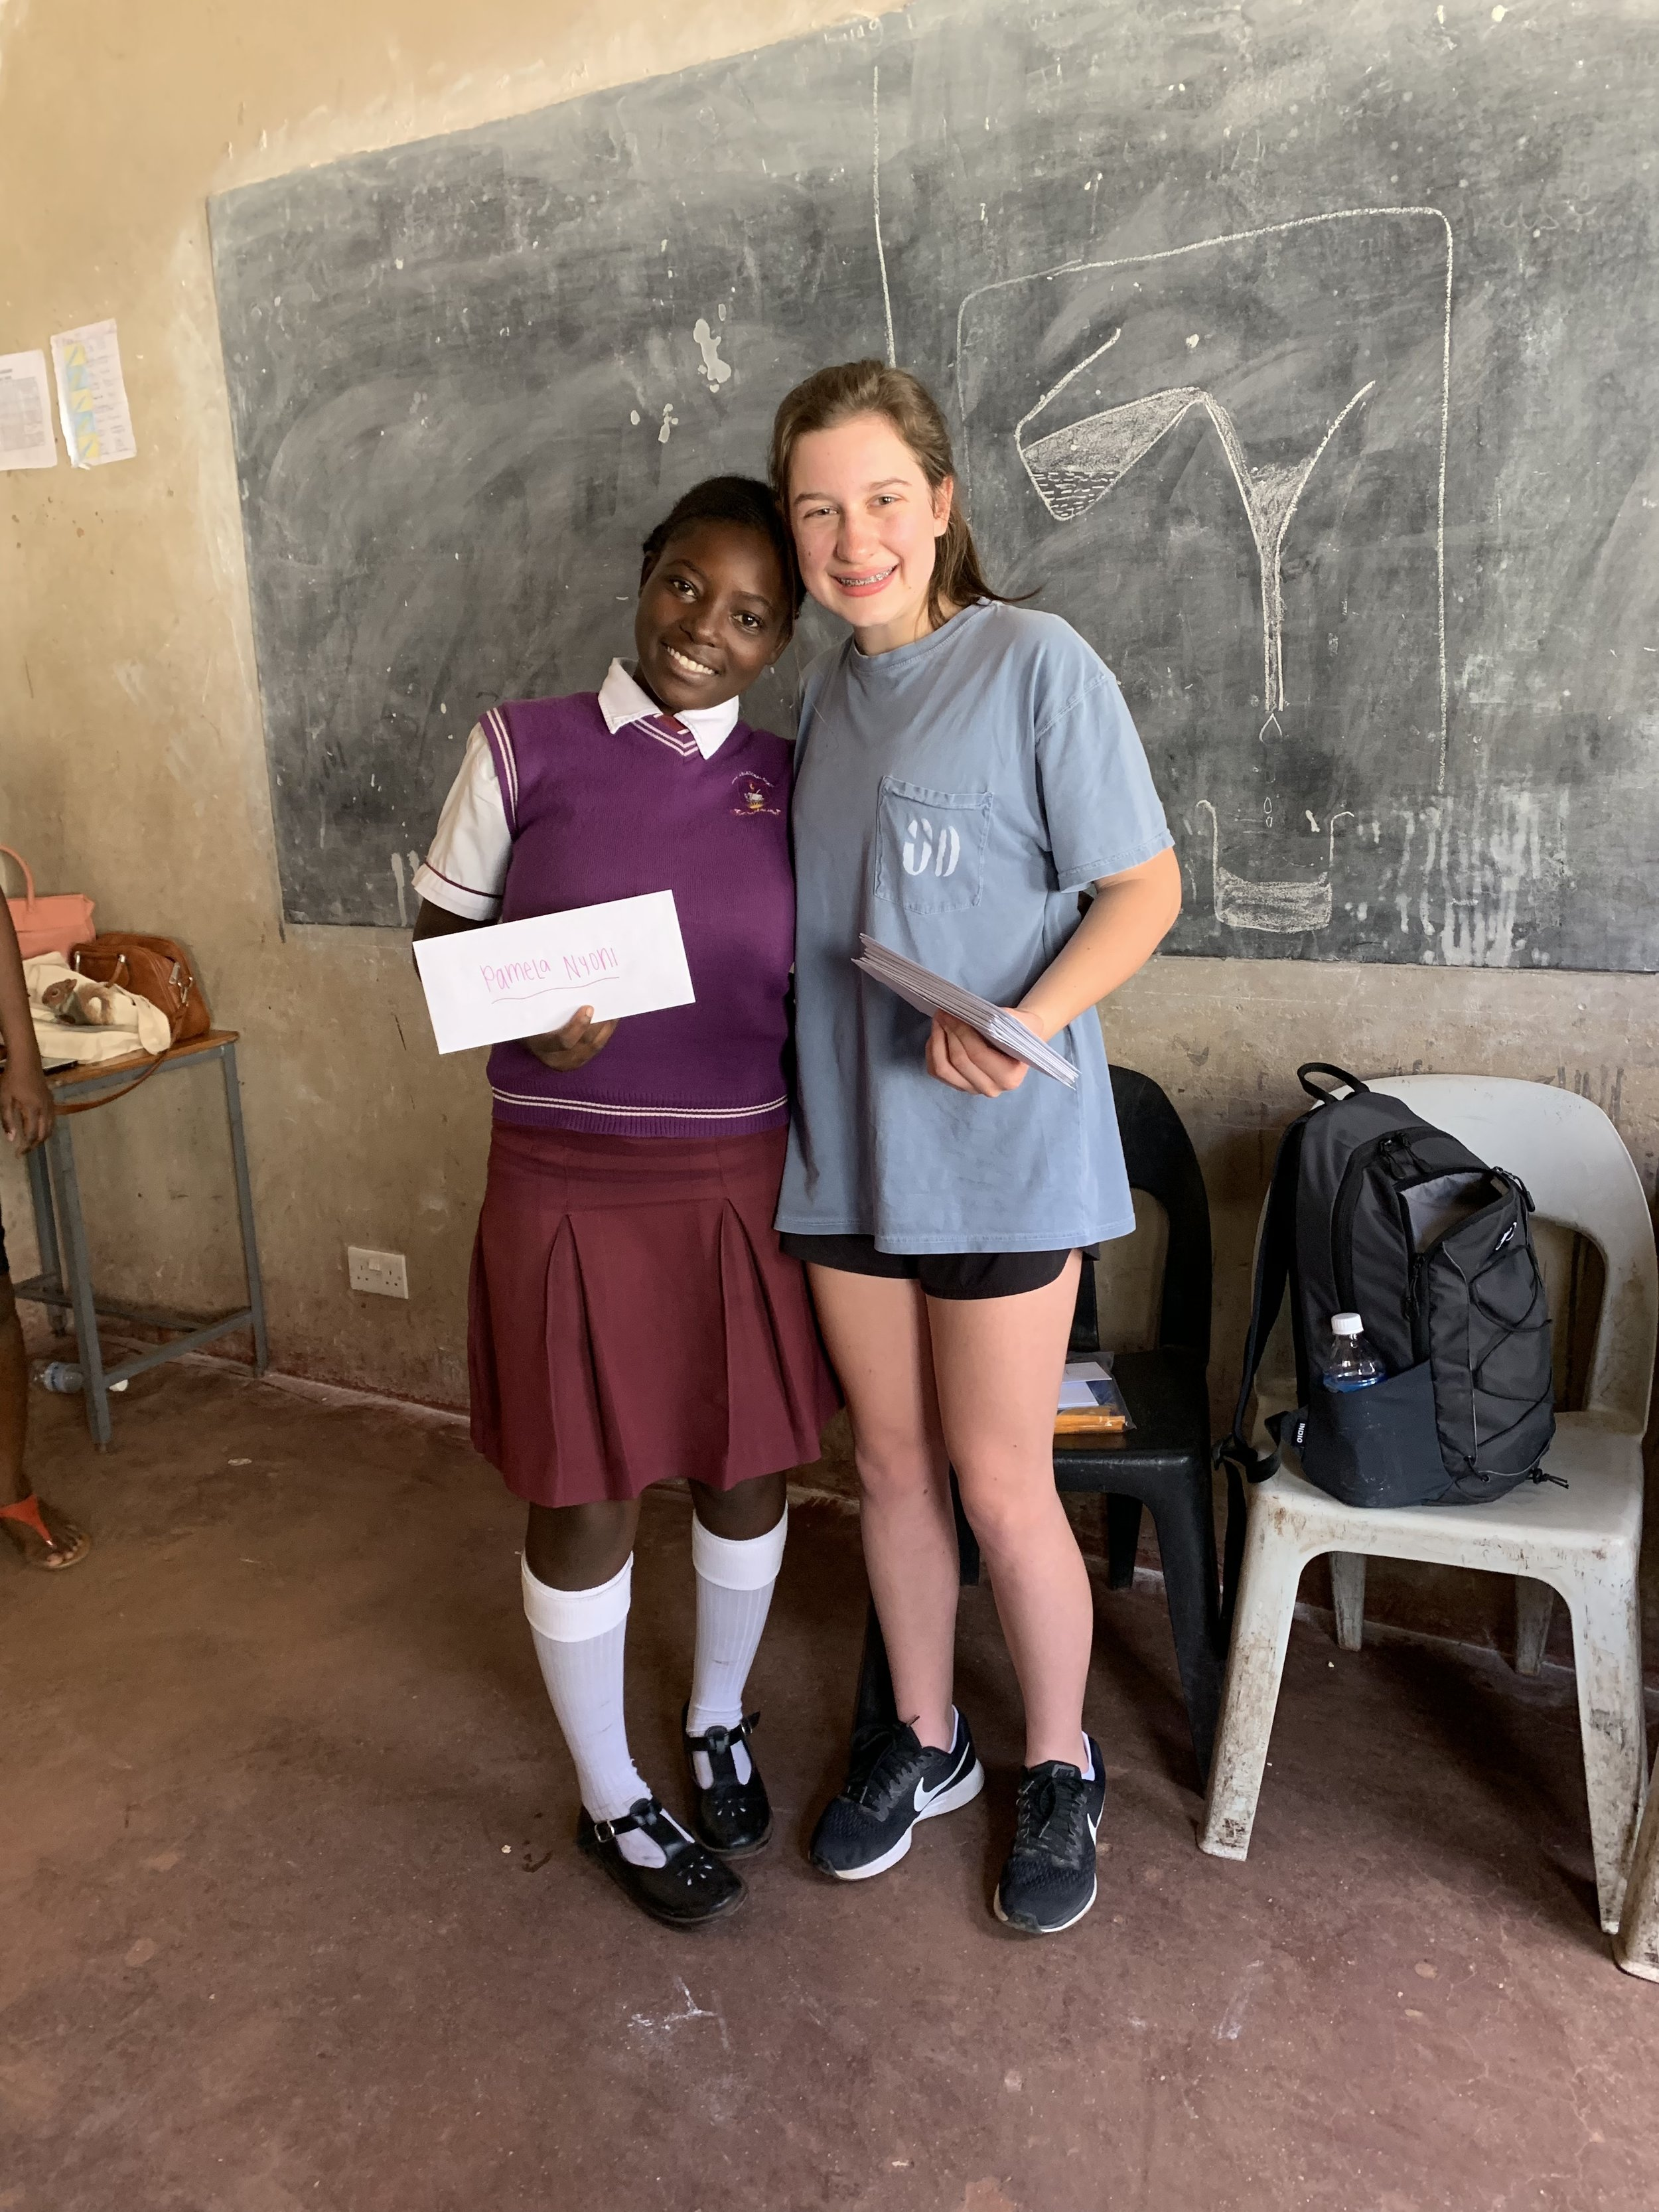 This is one of the girls, Pamela, after she received her pen-pal letter